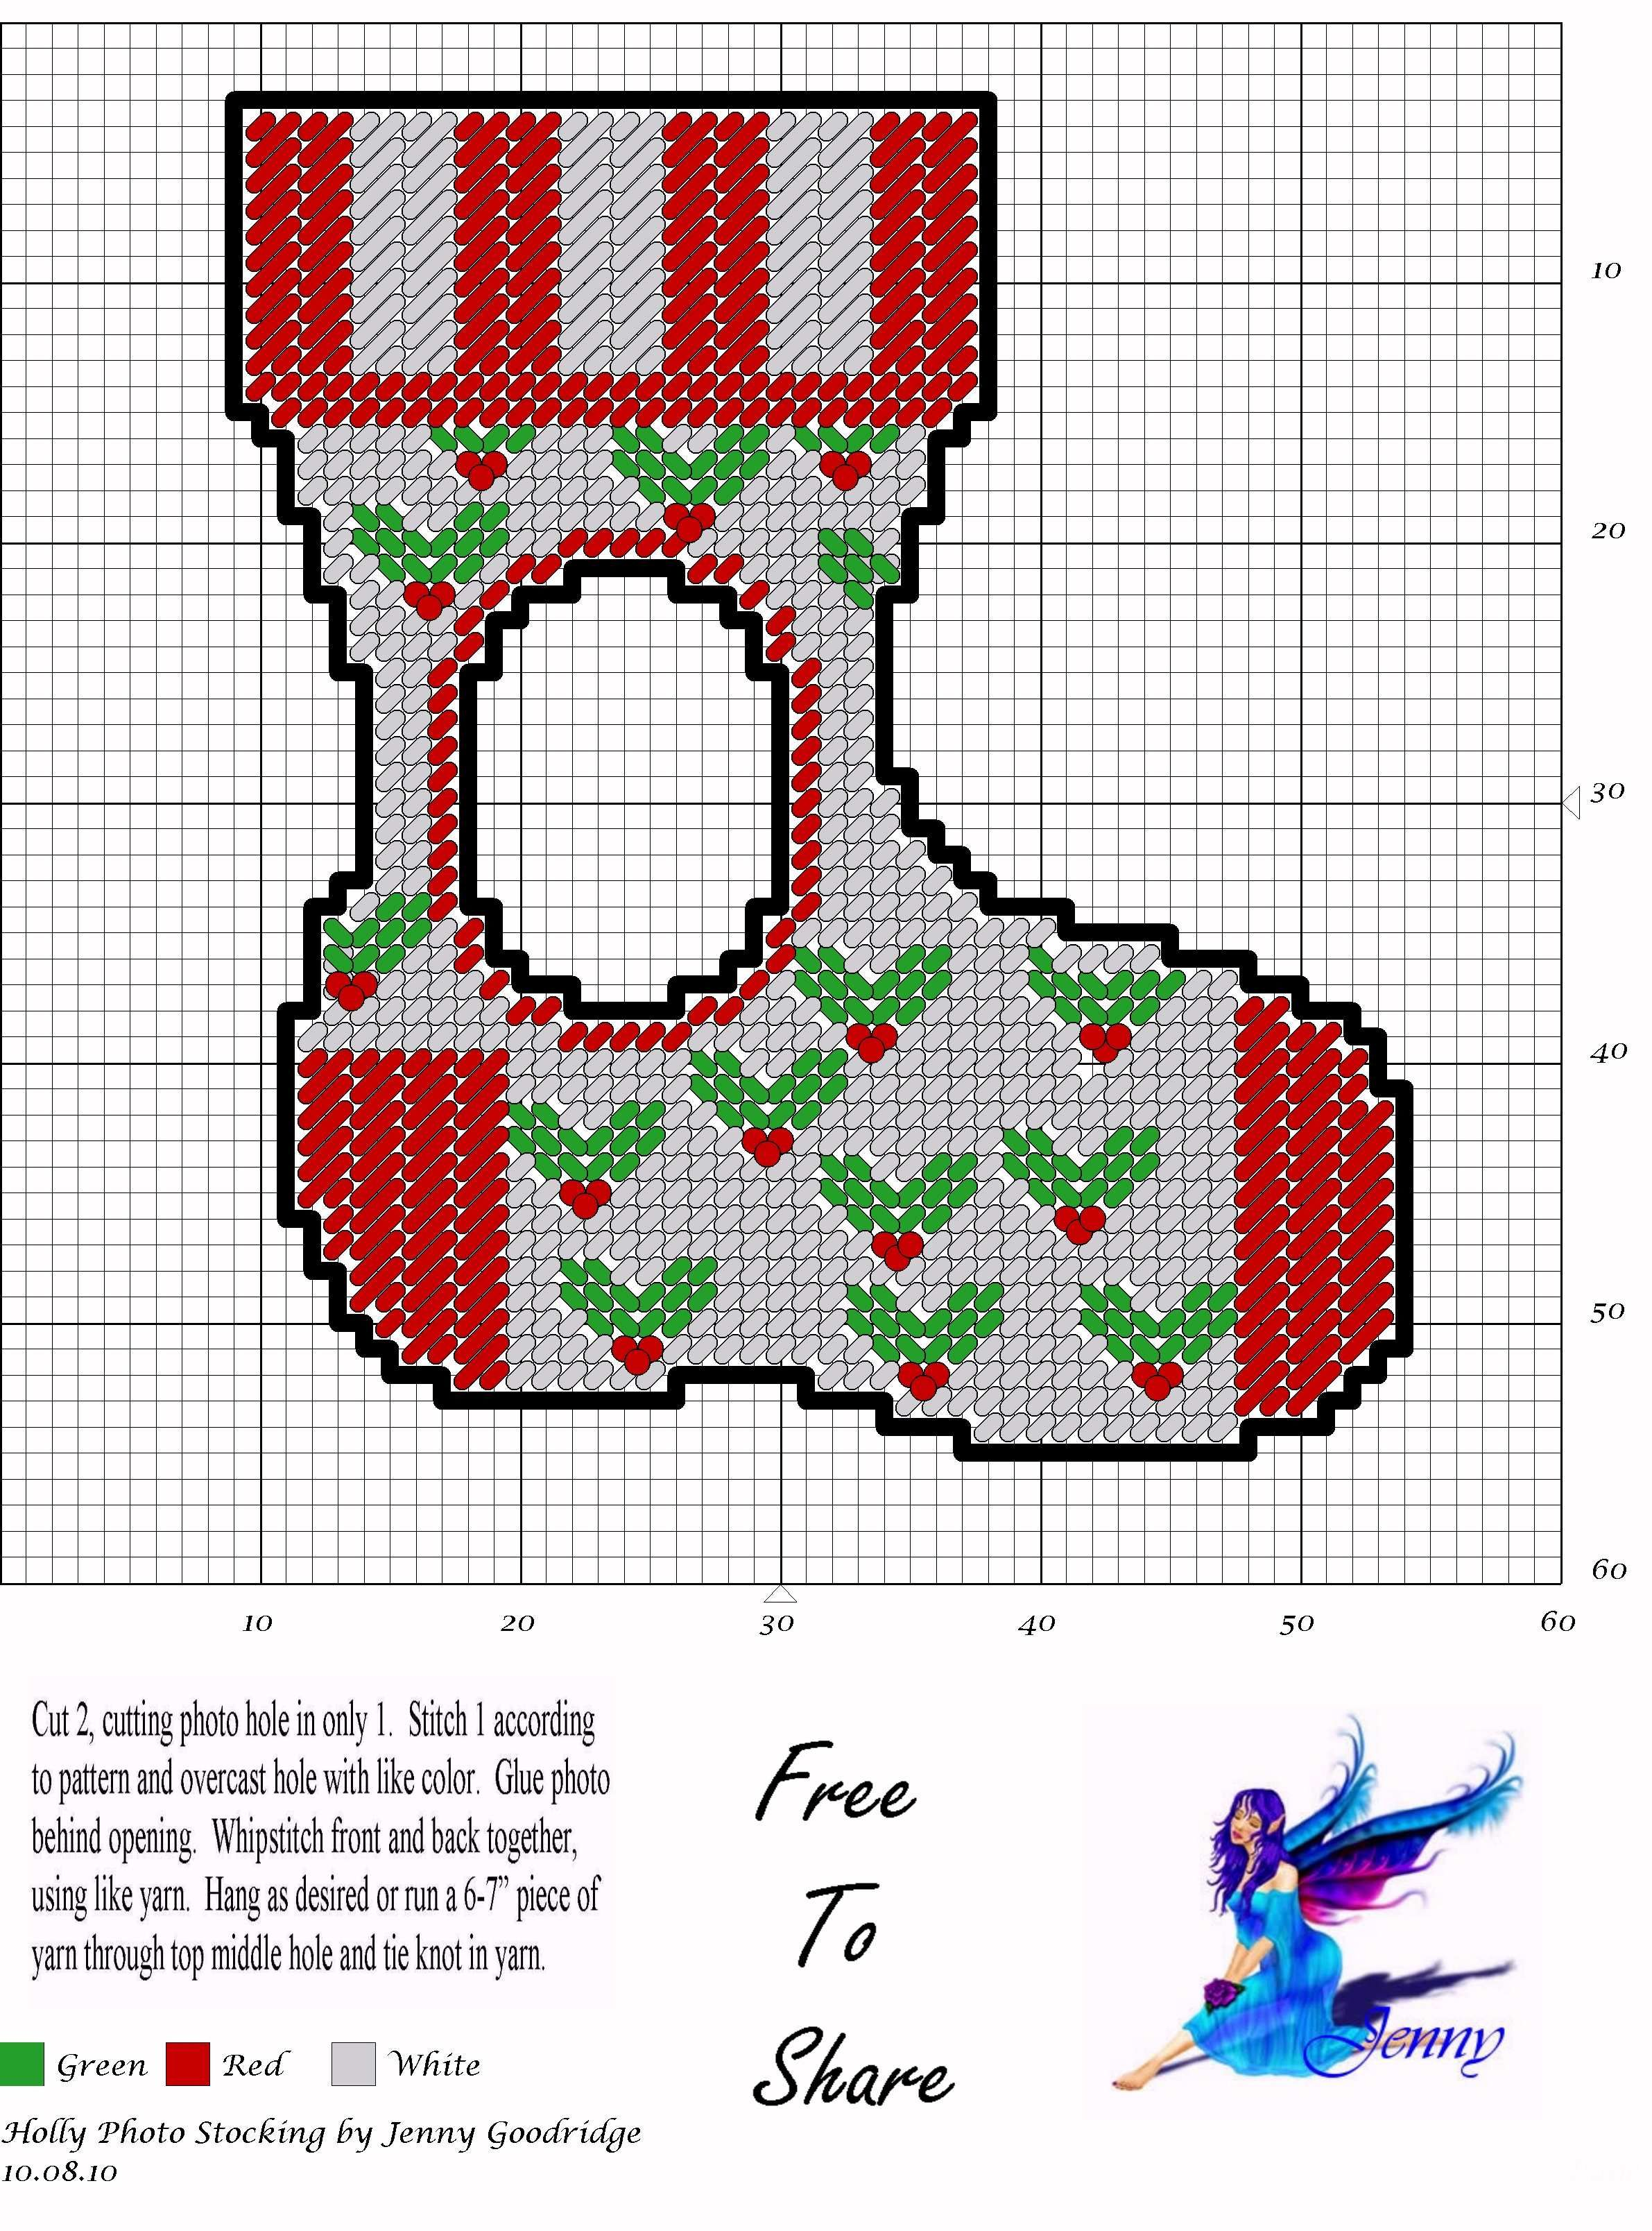 Holly Photo Stocking Plastic Canvas Patterns Plastic Canvas Christmas Plastic Canvas Ornaments